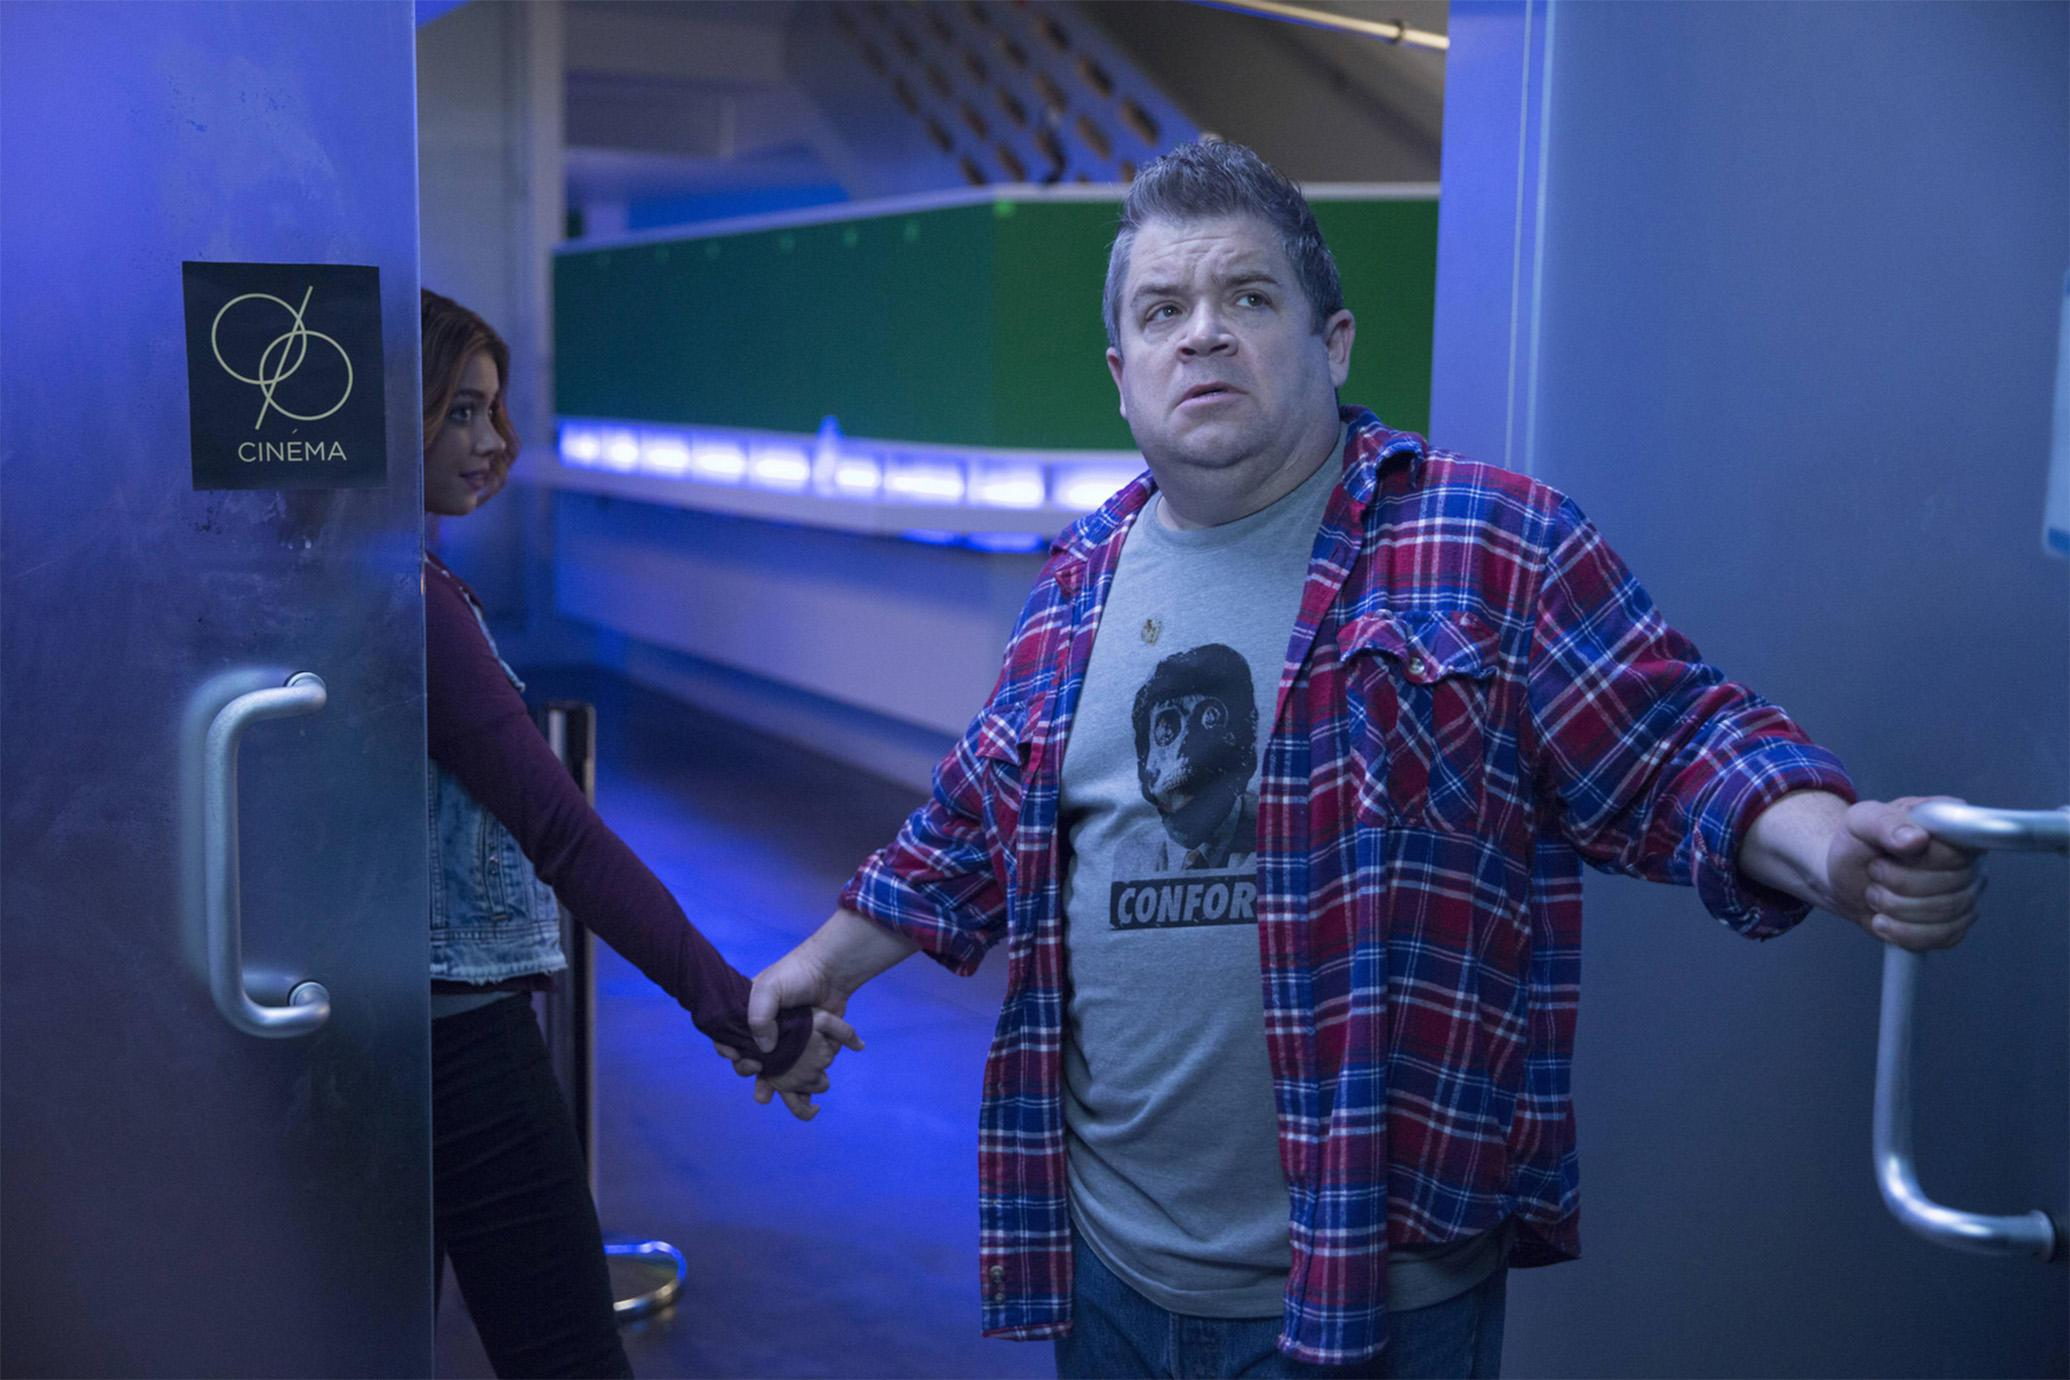 Dimension 404 - series - episode 2 - Cinethrax 3000 - Patton Oswalt as Uncle Dusty